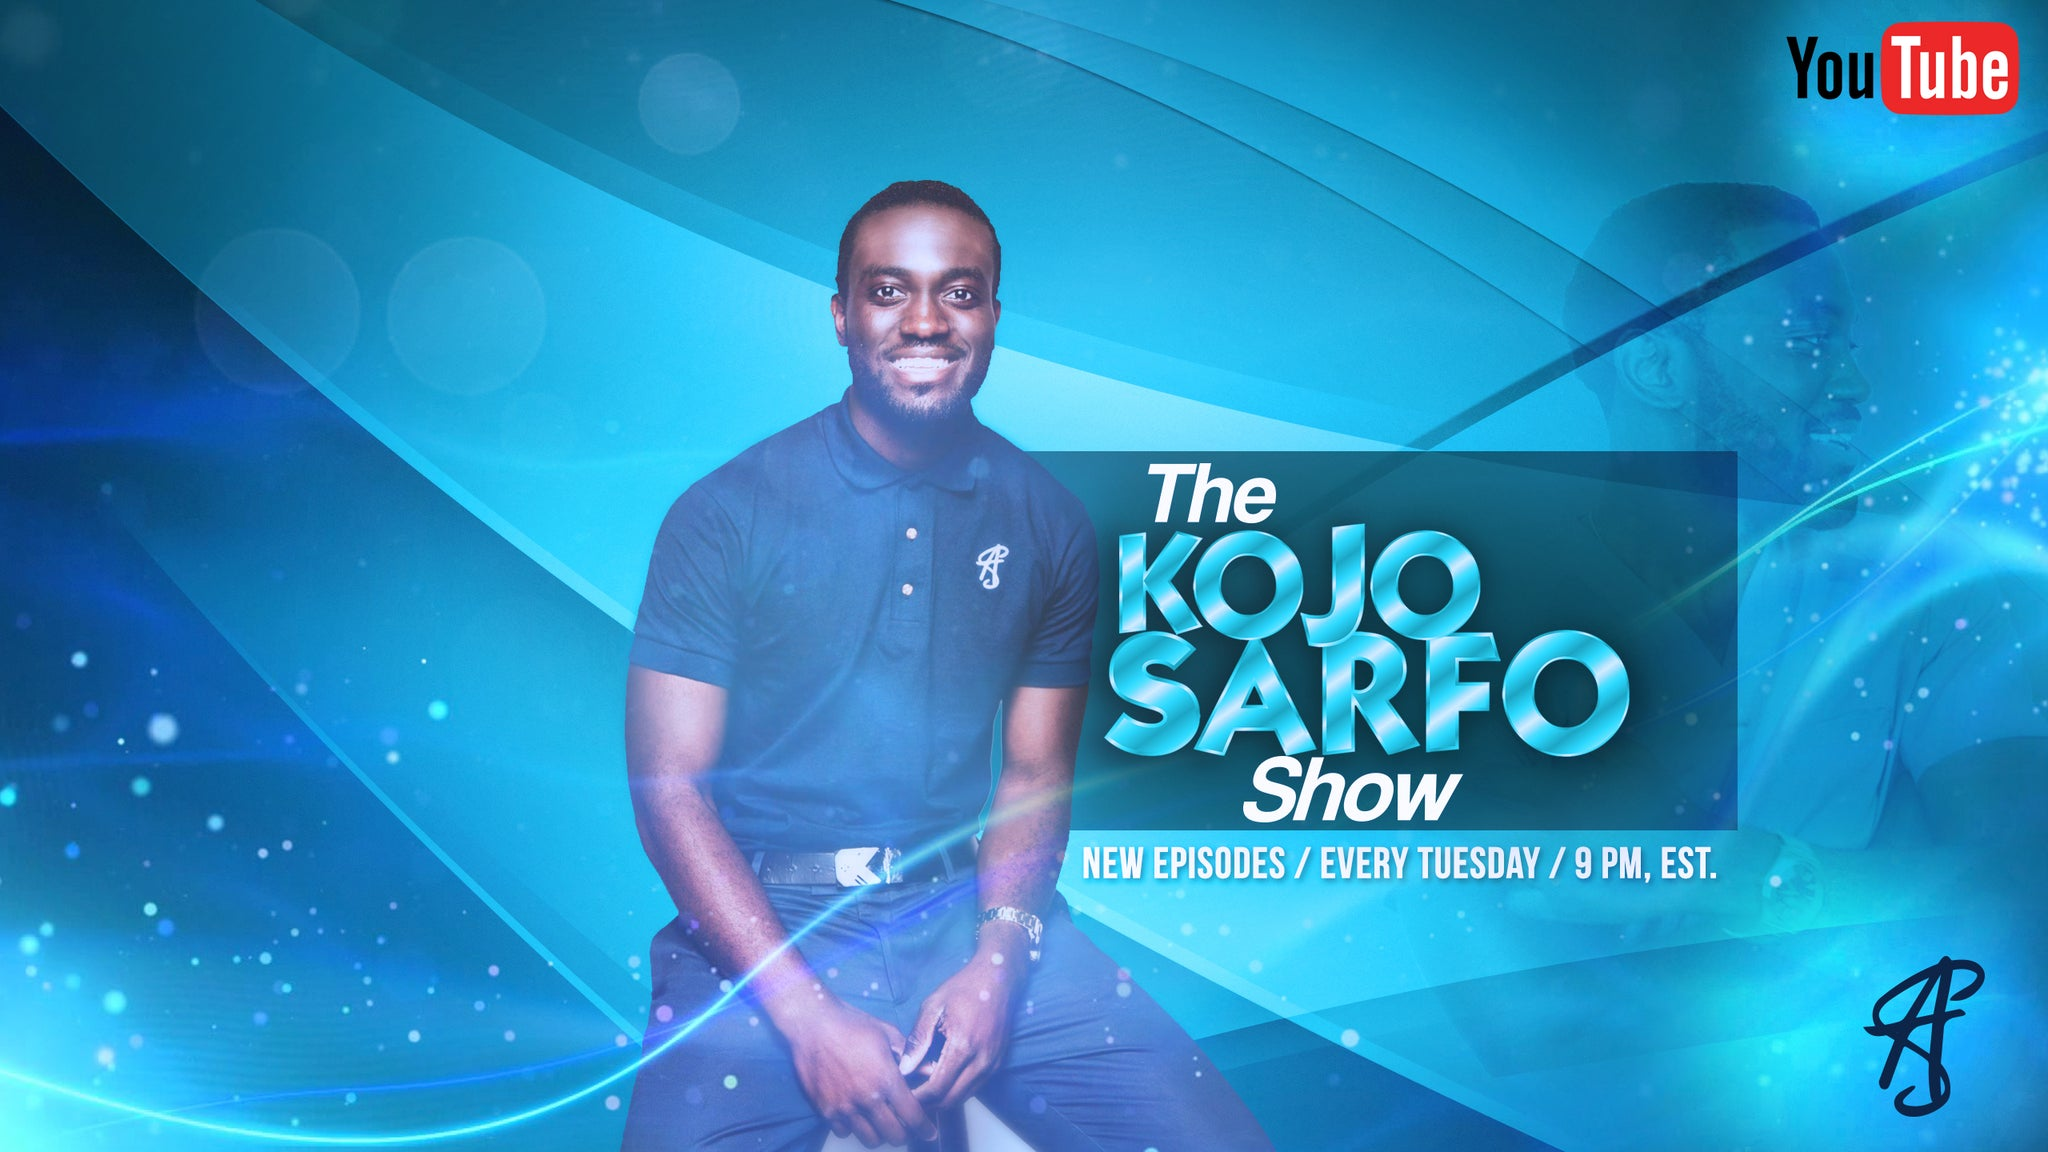 THE KOJO SARFO SHOW (SPONSORED BY A&S)